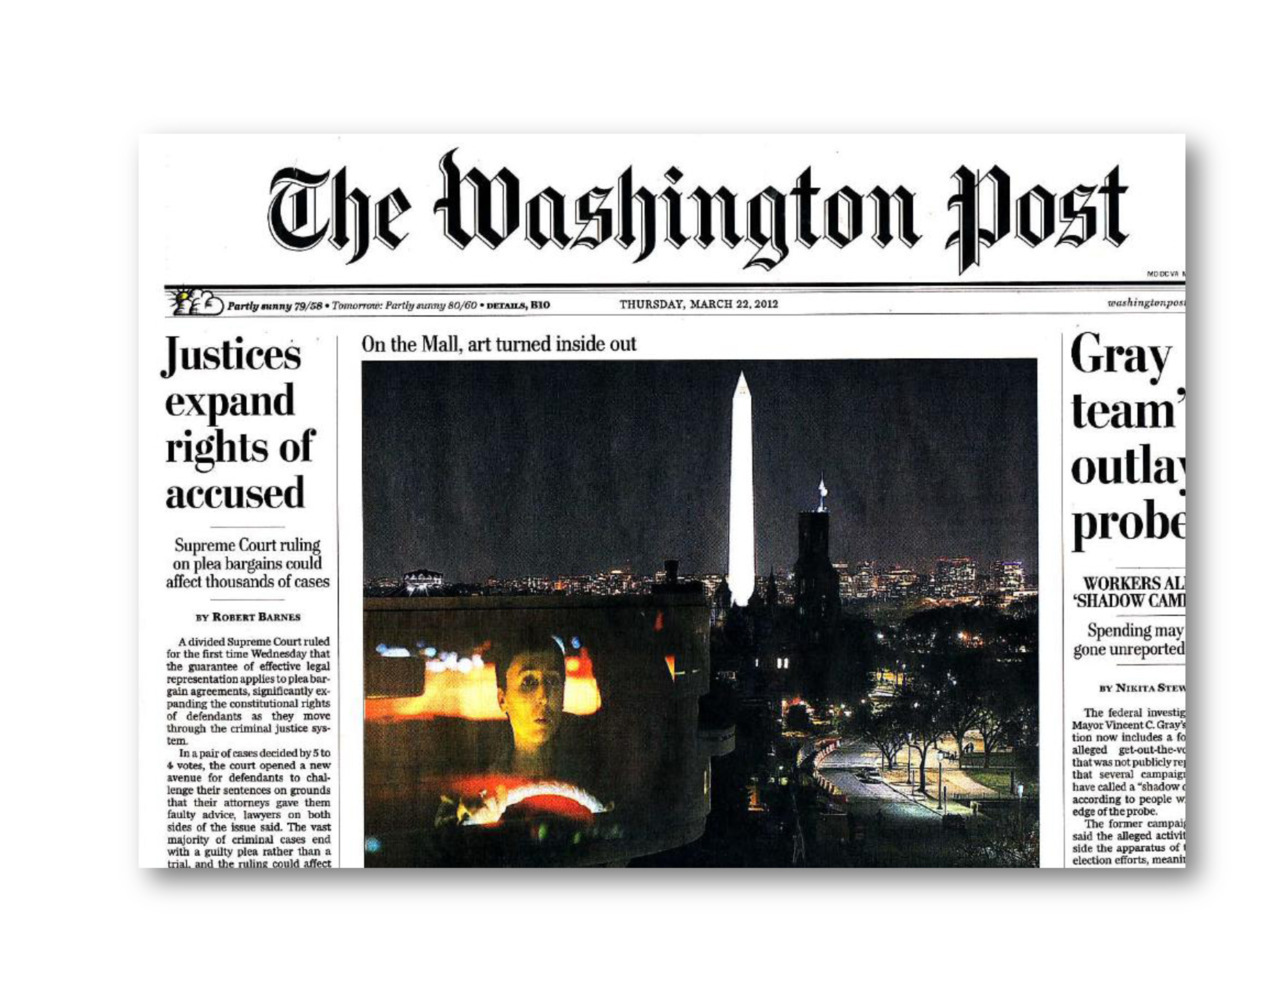 Washington Post Front Page